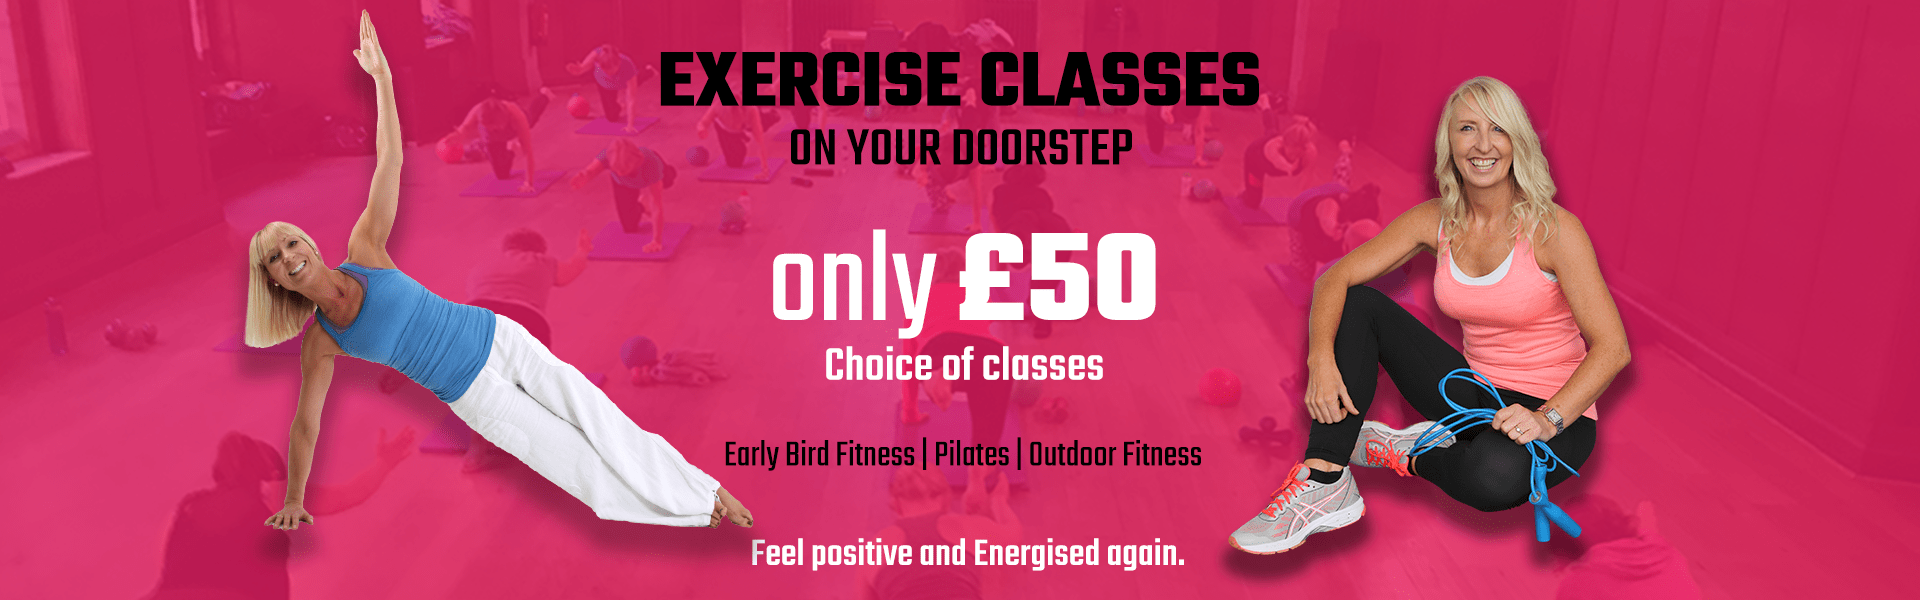 Exercise-classes-on-your-doorstep